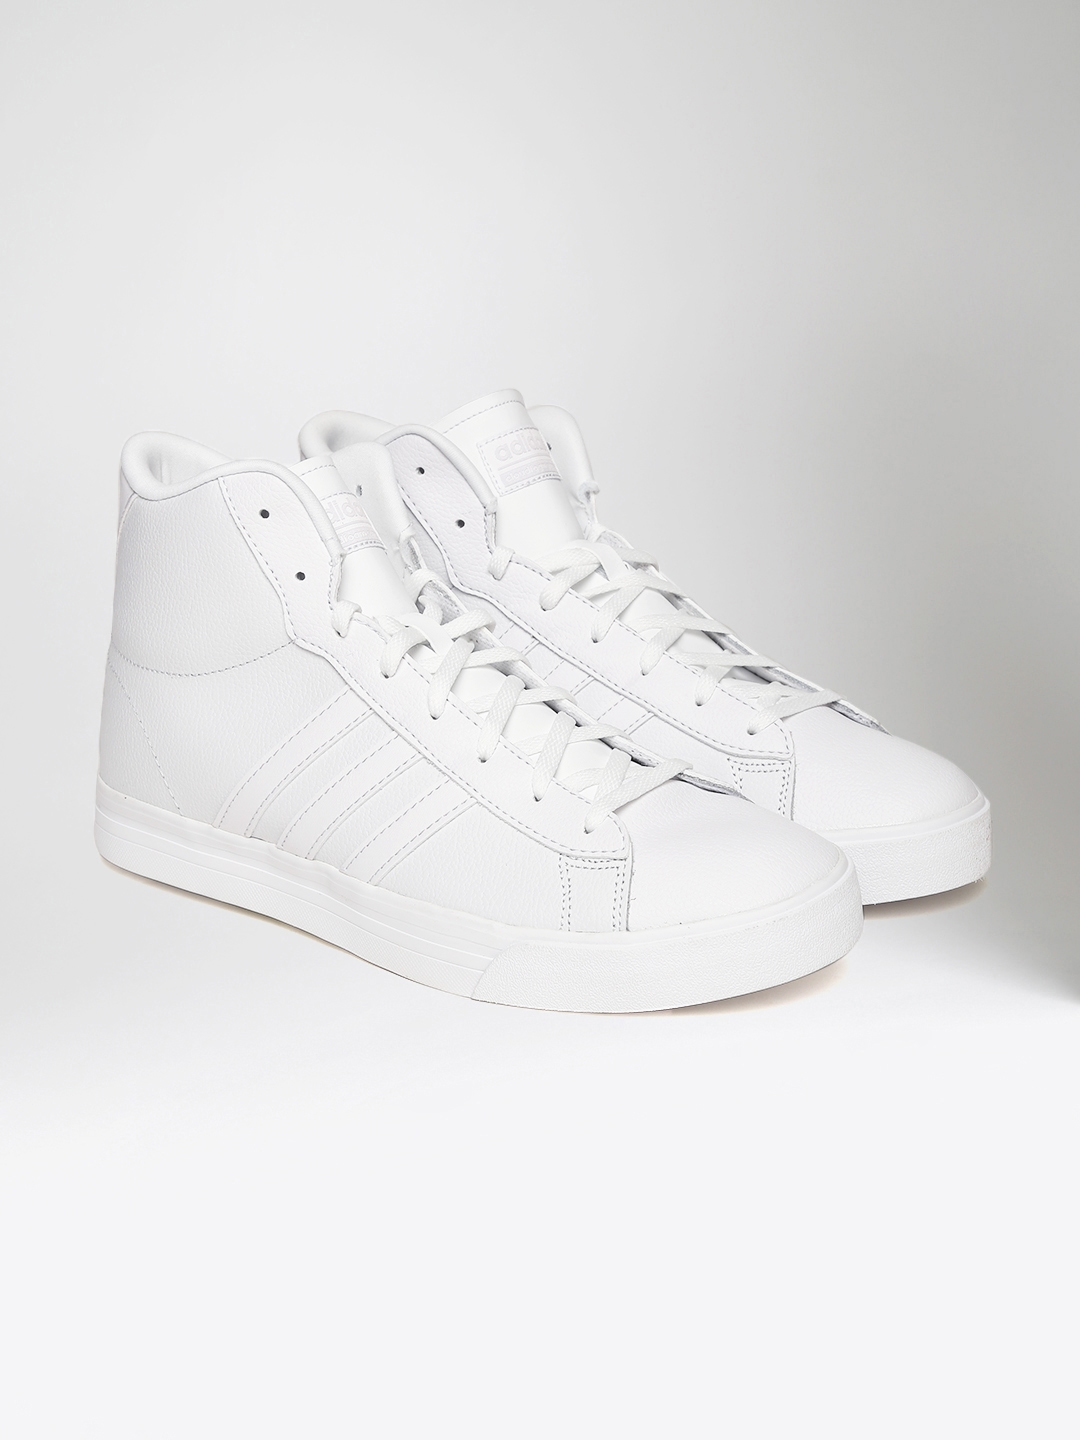 new concept 0af7d 8e1e5 ADIDAS NEO Men White CloudFoam Super Daily Solid Mid-Top Sneakers